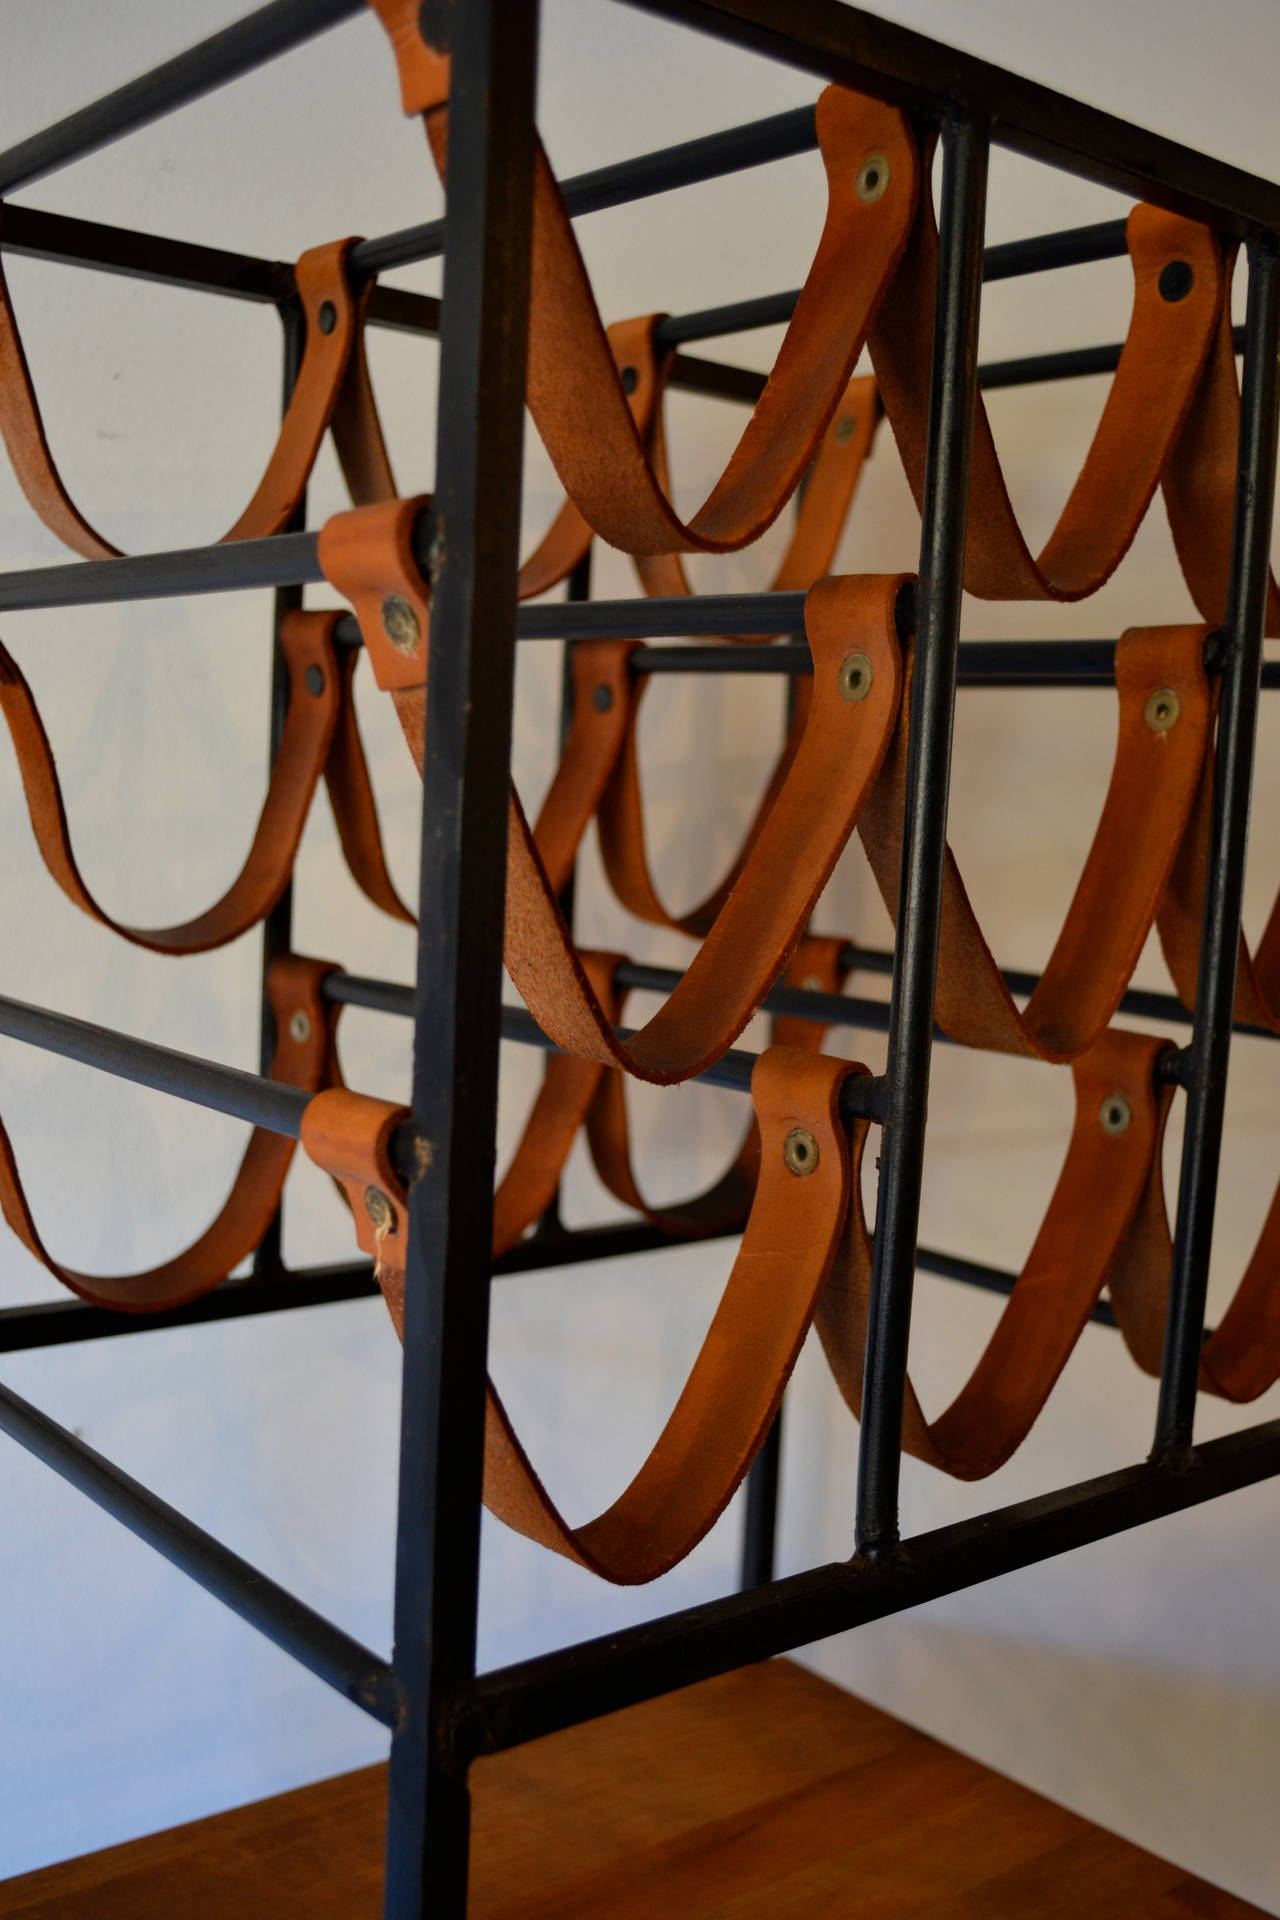 American Pair of Wrought Iron and Butcher Block Wine Racks by Arthur Umanoff, 1950s For Sale